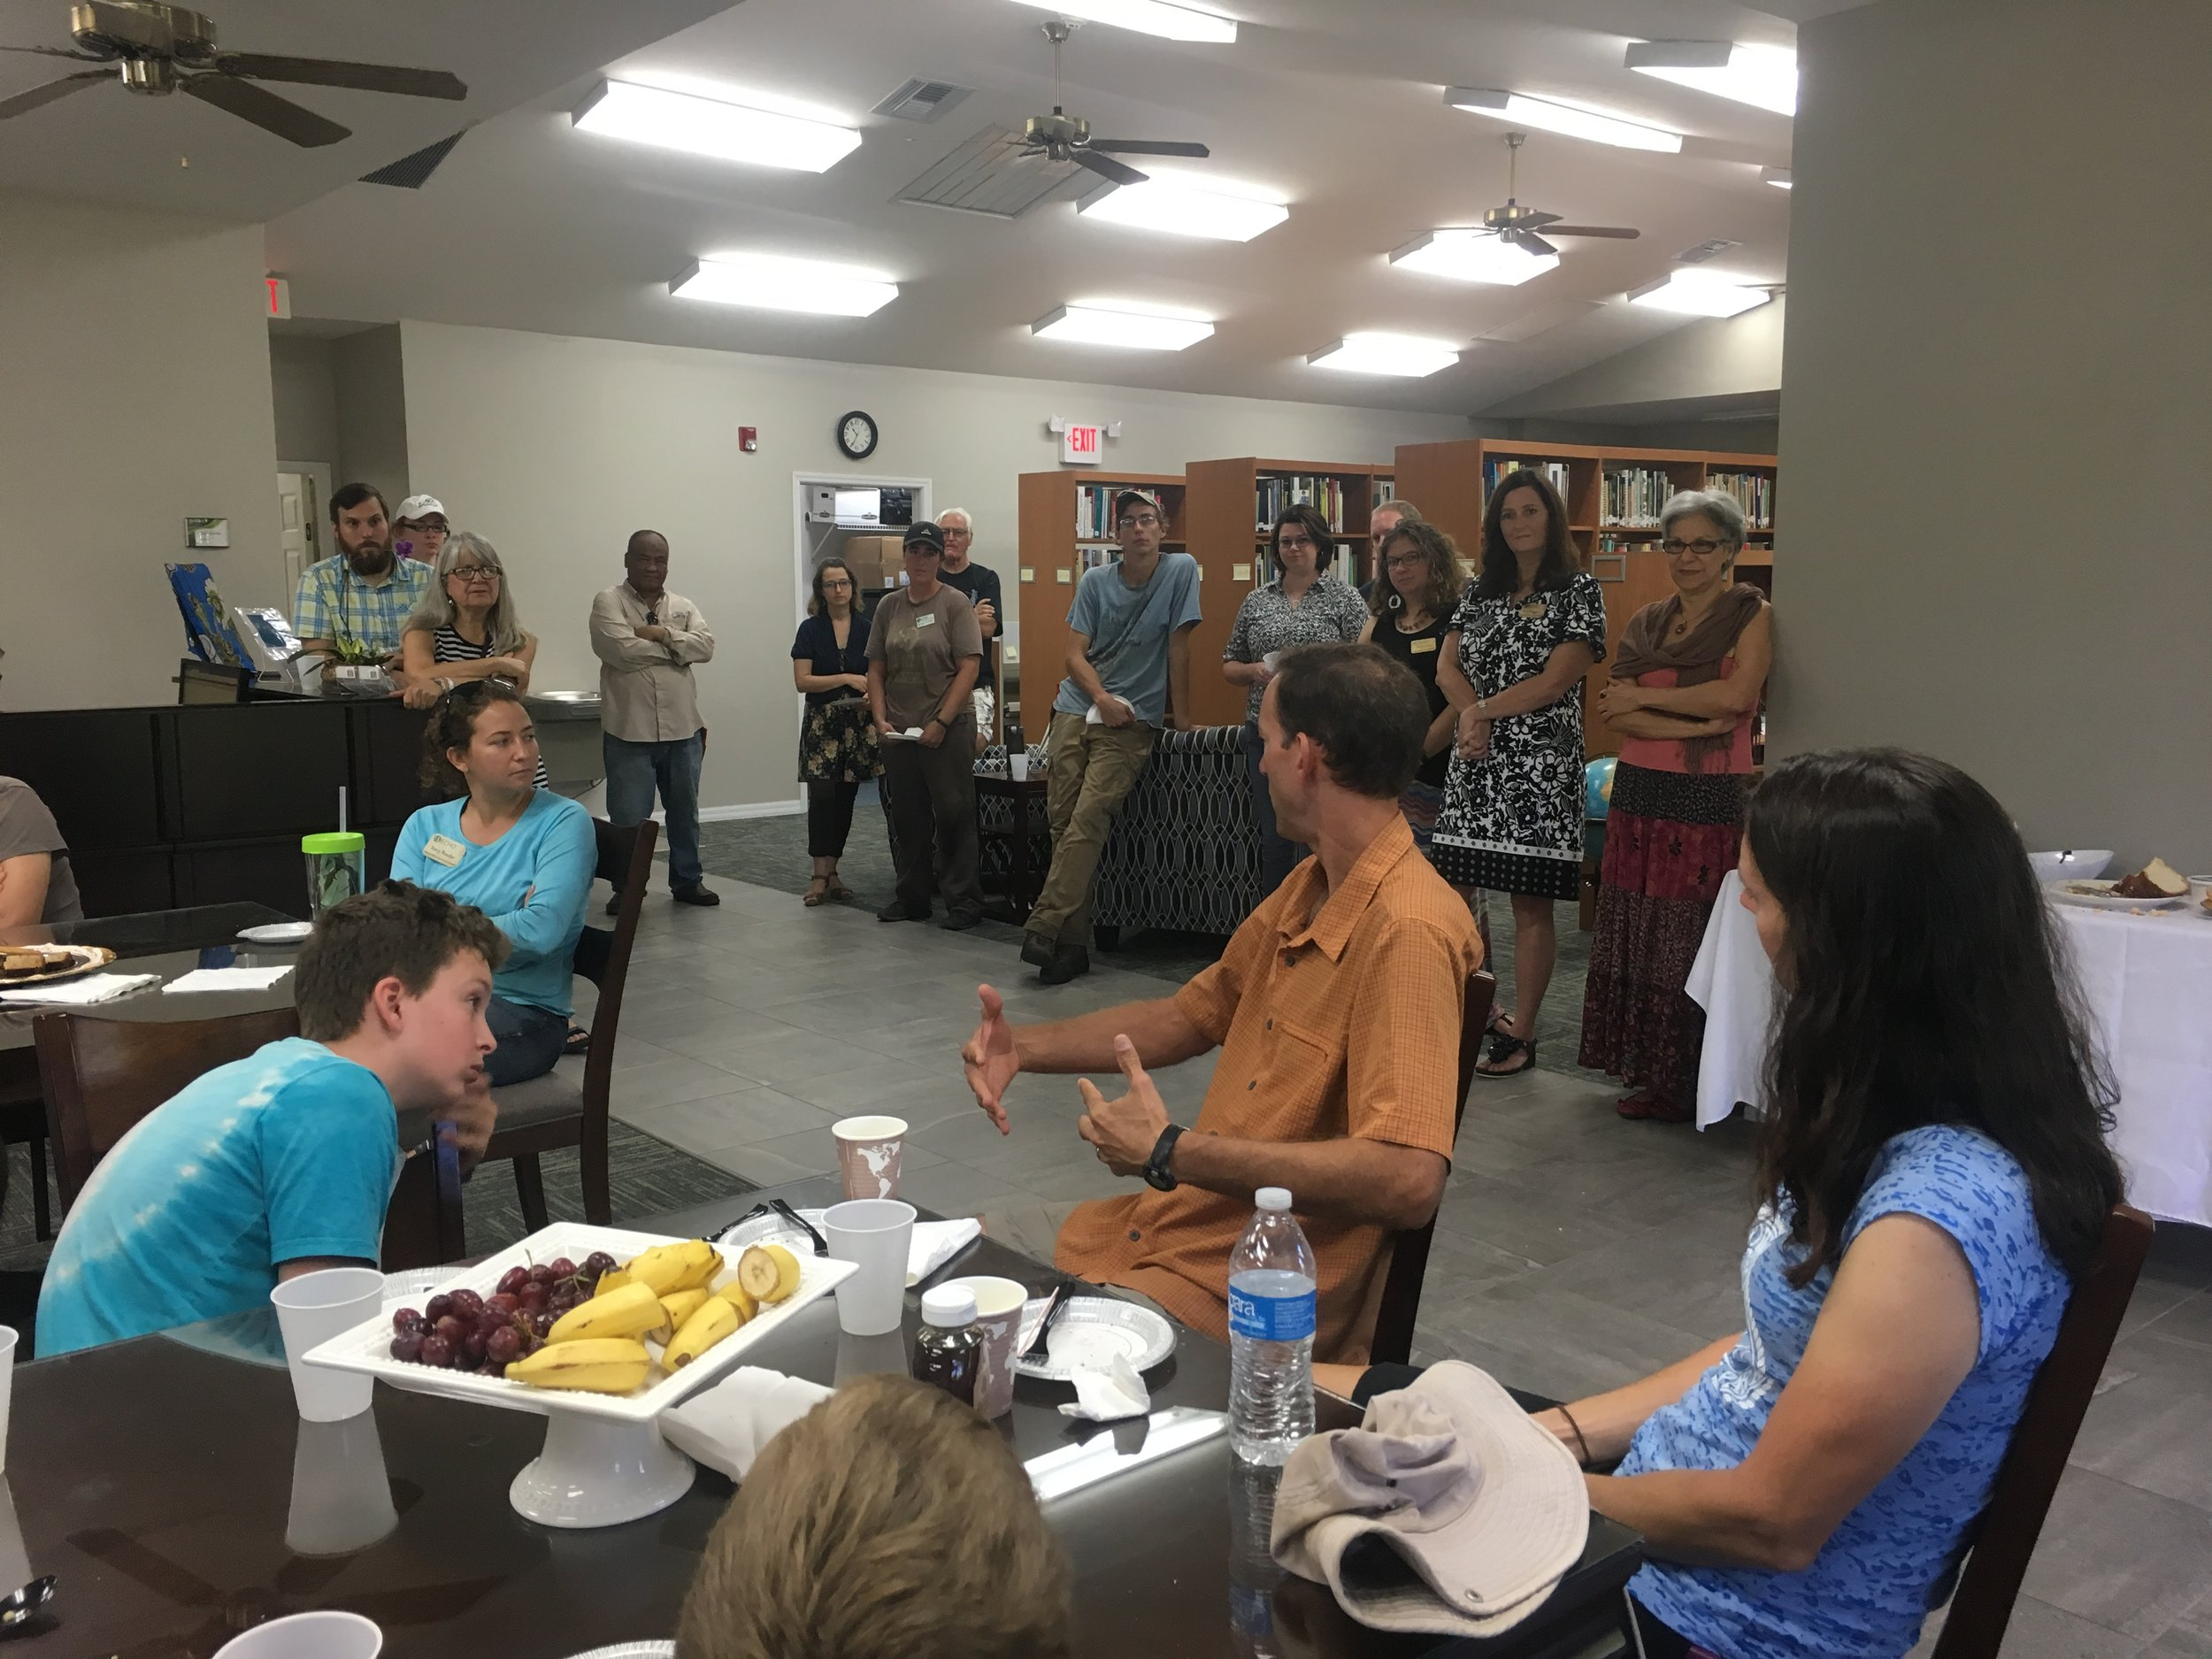 This is a picture of Jerry explaining some aspect of our bike trip with the ECHO staff and interns at the reception that they had for us. From this perspective, you can only see about a third of the folks that had attended.